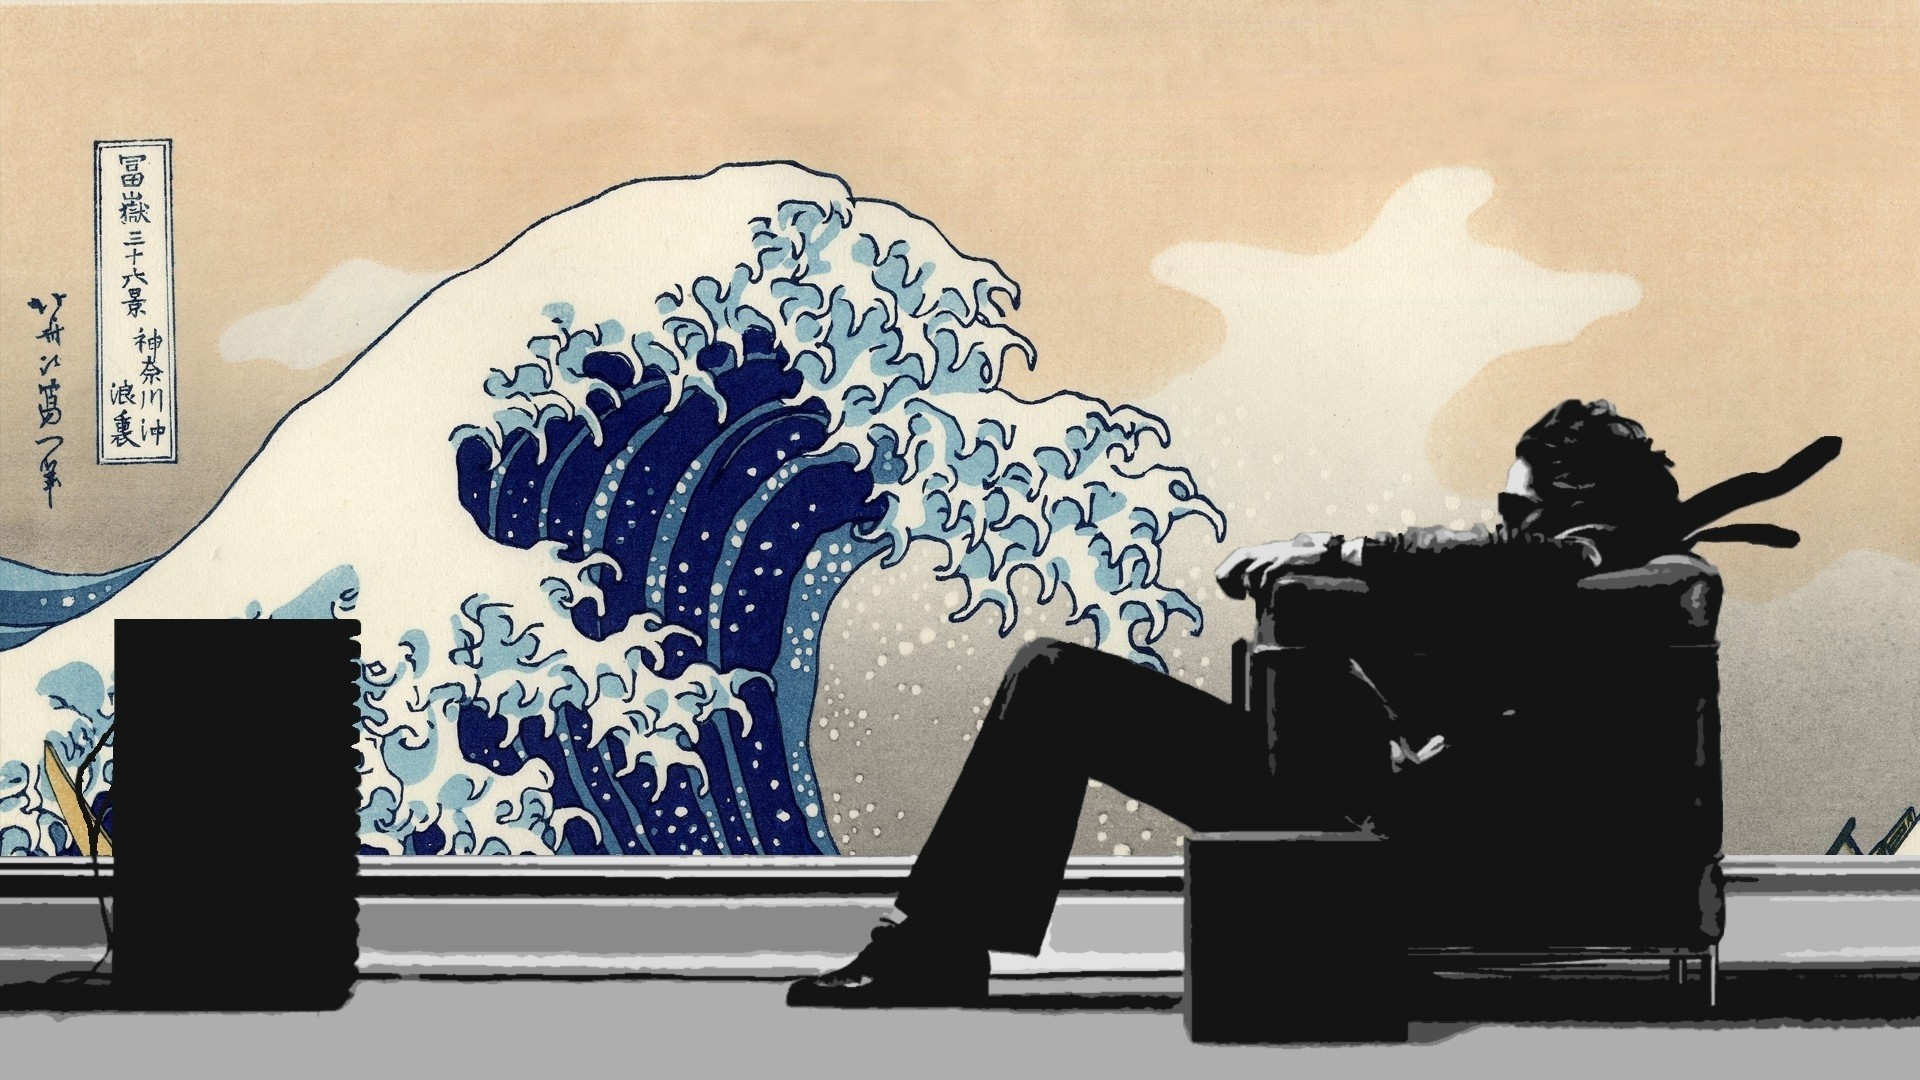 1920x1080 music waves men japanese chairs artwork maxell the great wave off kanagawa 1920x1080 wallpaper